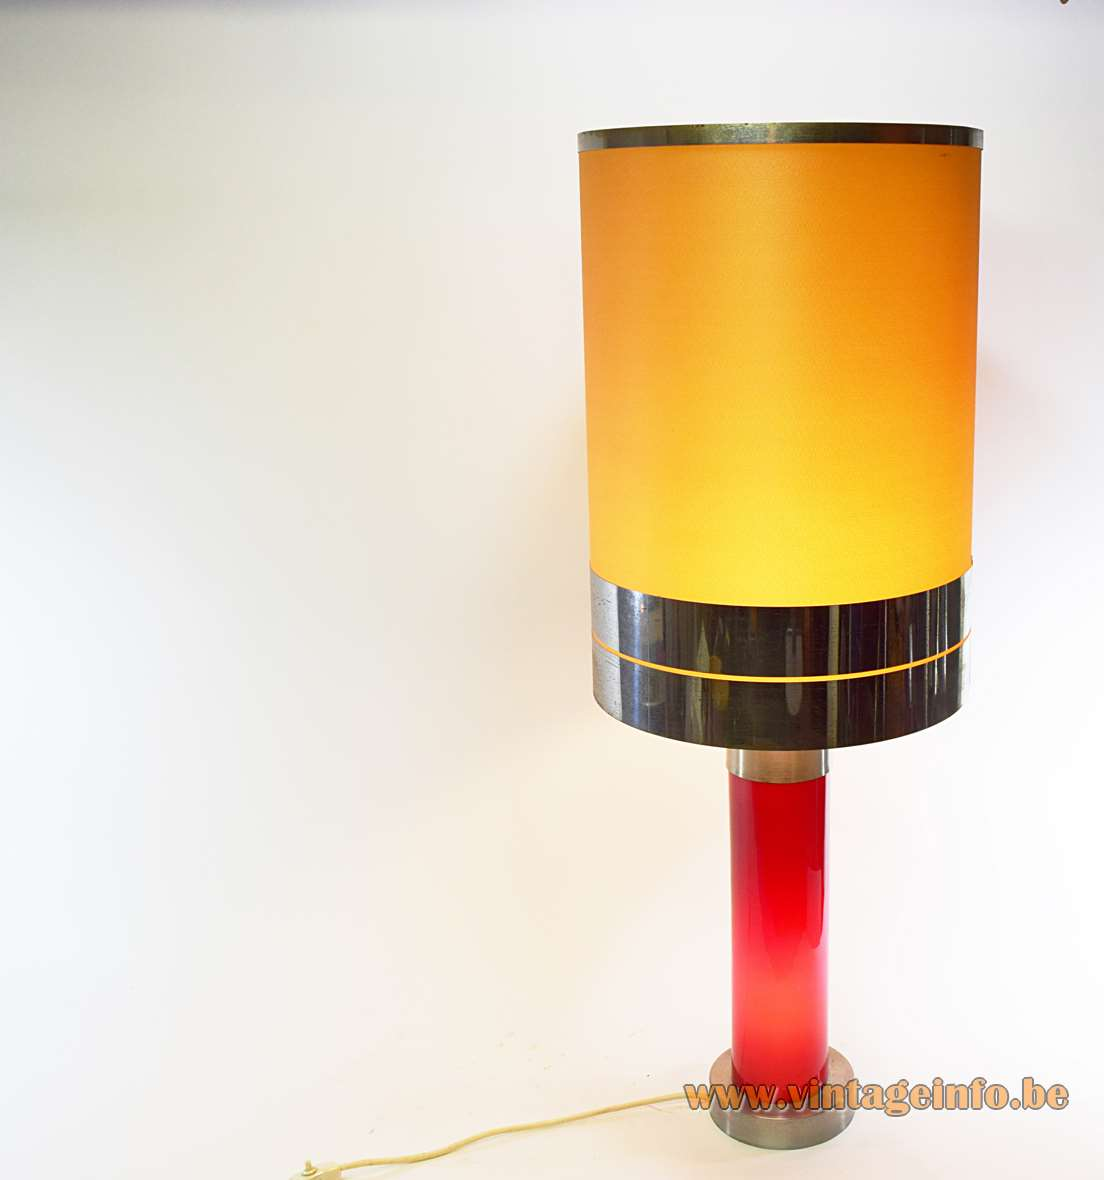 Incamiciato table lamp maroon red glas tube aluminium base 1960s 1970s yellow fabric lampshade MCM Murano